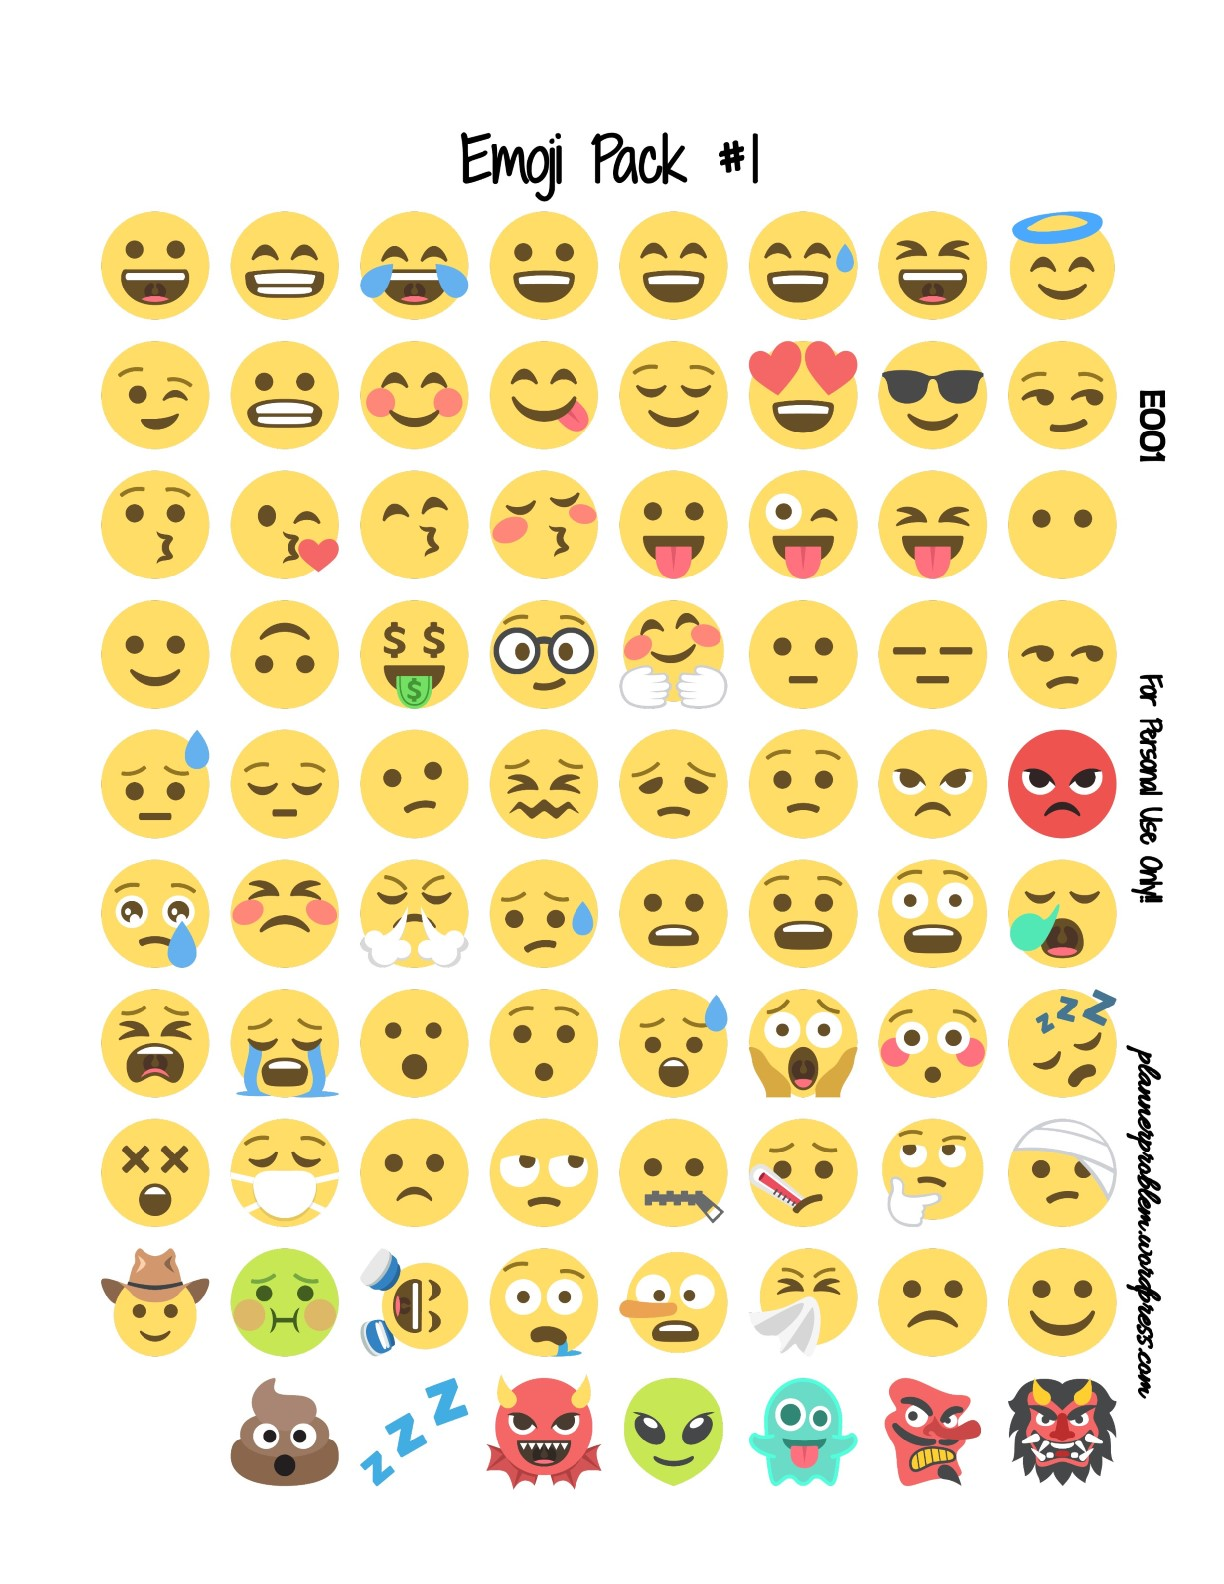 photograph about Printable Emoji identify Emoji Pack #1 Cost-free Printable Planner Stickers PlannerProblem